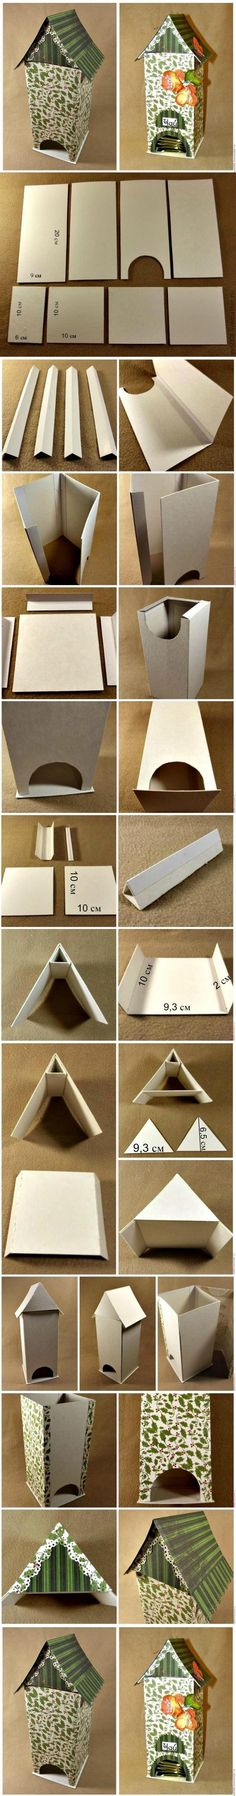 DIY Cardboard Tea Bag Dispenser